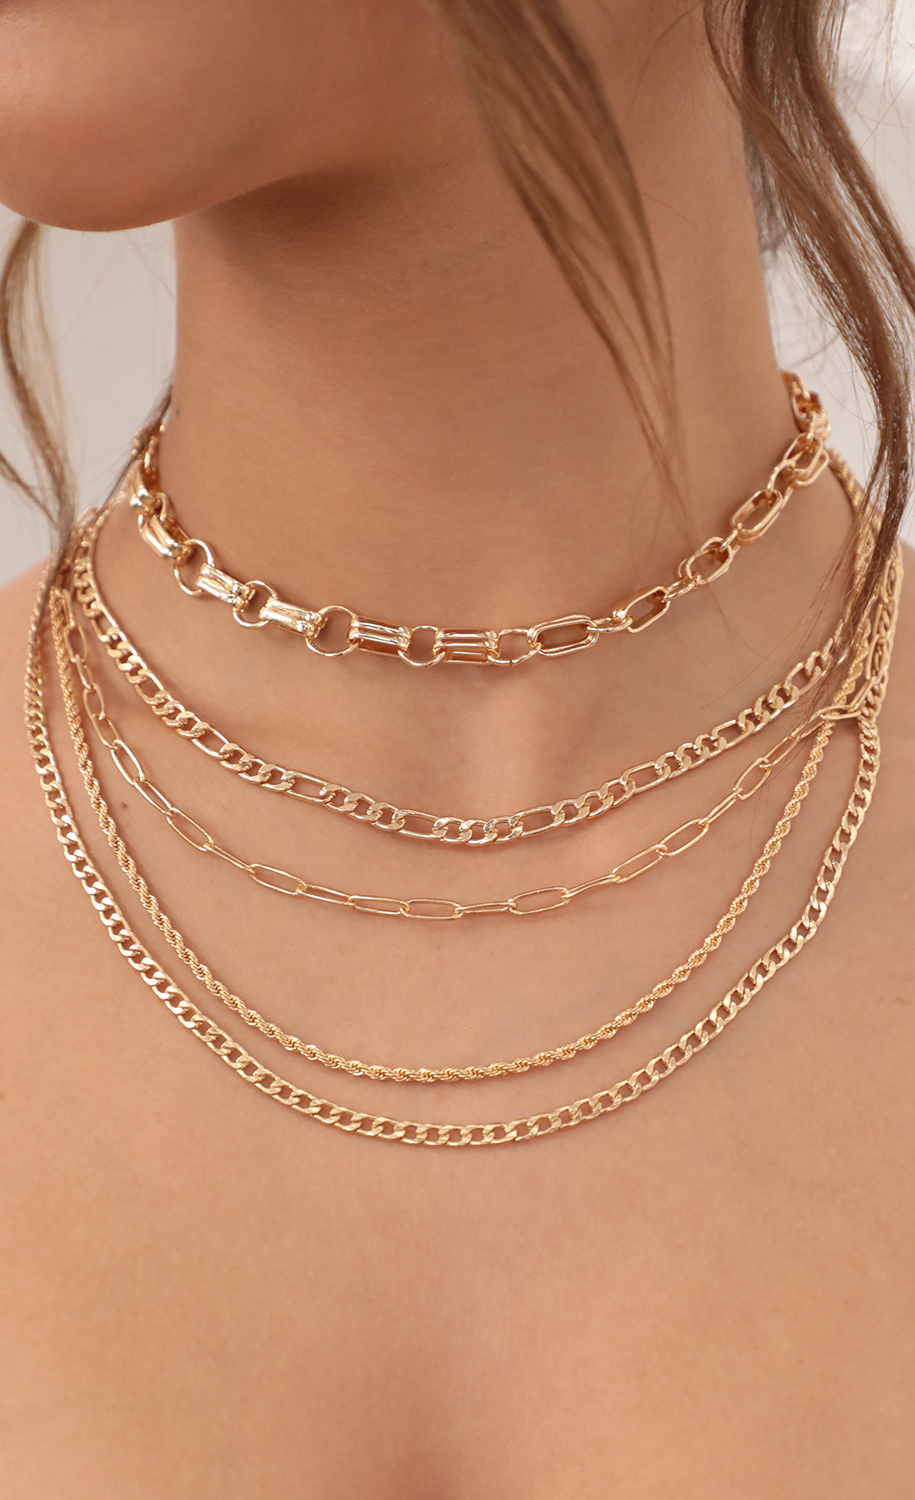 Chain Me Up Necklace Set in Gold